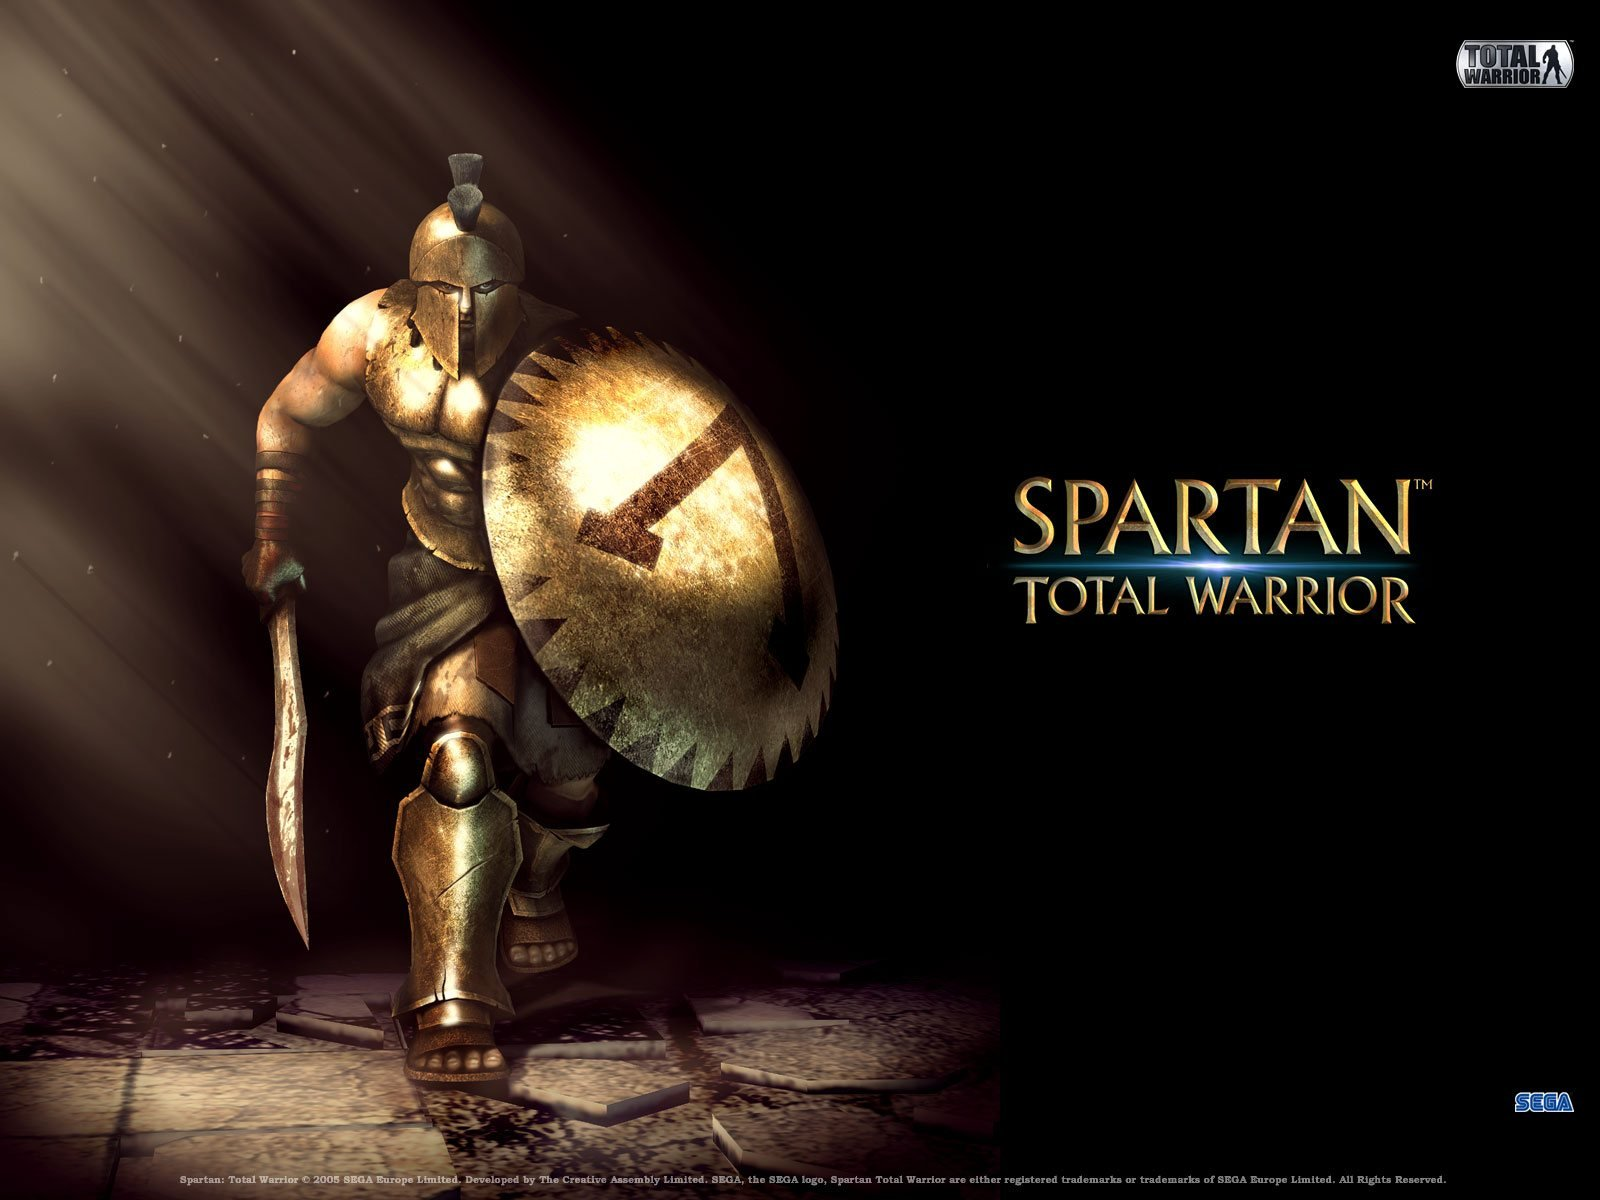 HD Spartan Wallpapers - WallpaperSafari